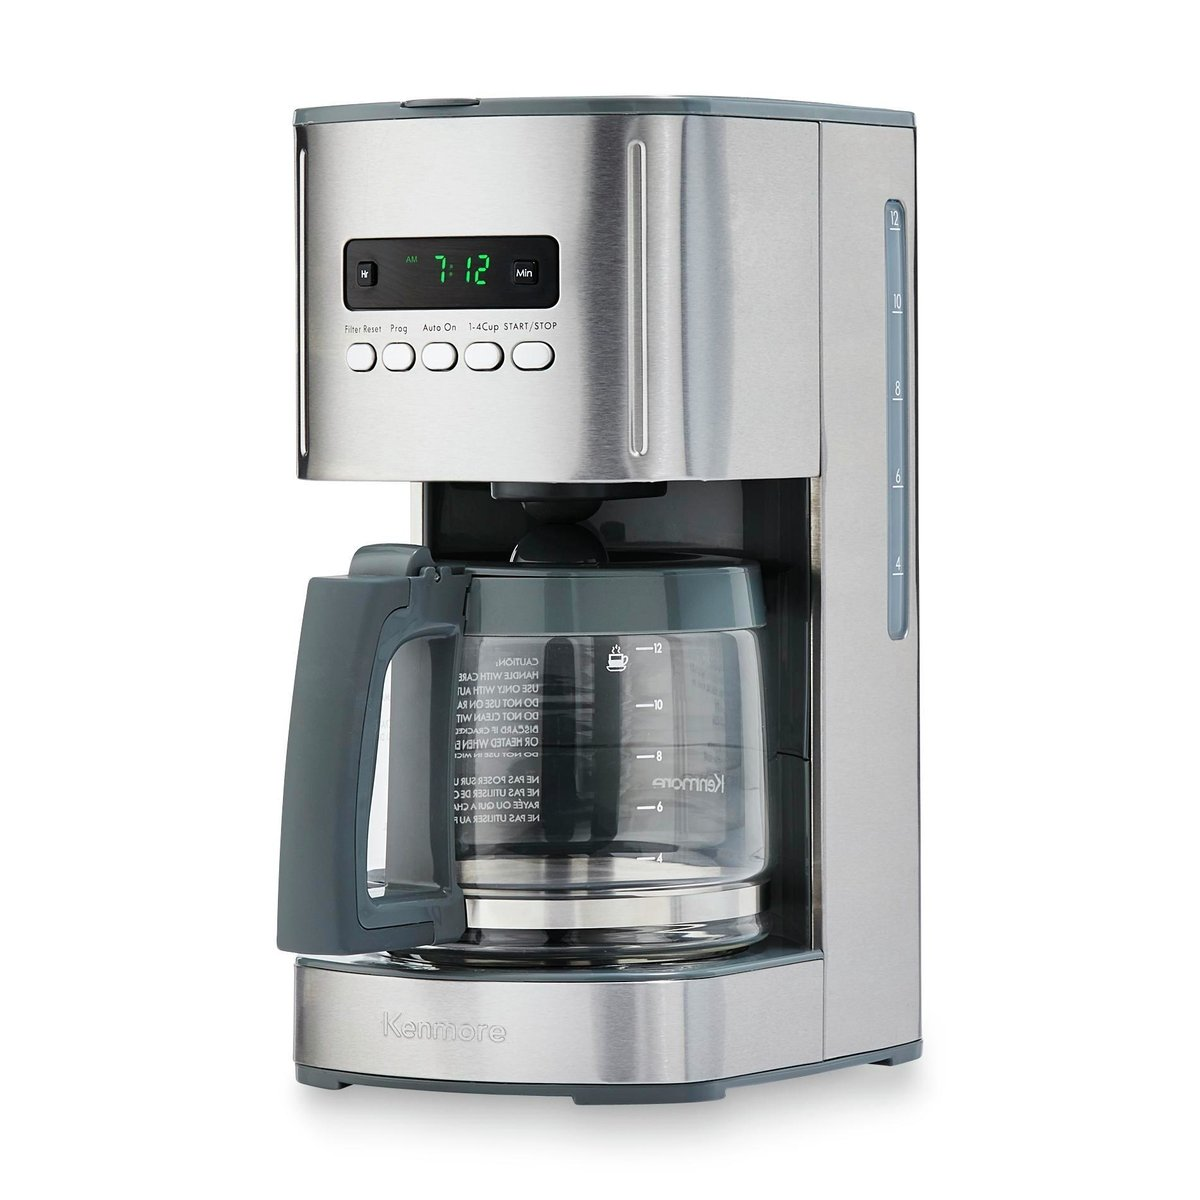 Kenmore 00840706 12-Cup Programmable Aroma Control Coffee Maker, Stainless Steel by Kenmore